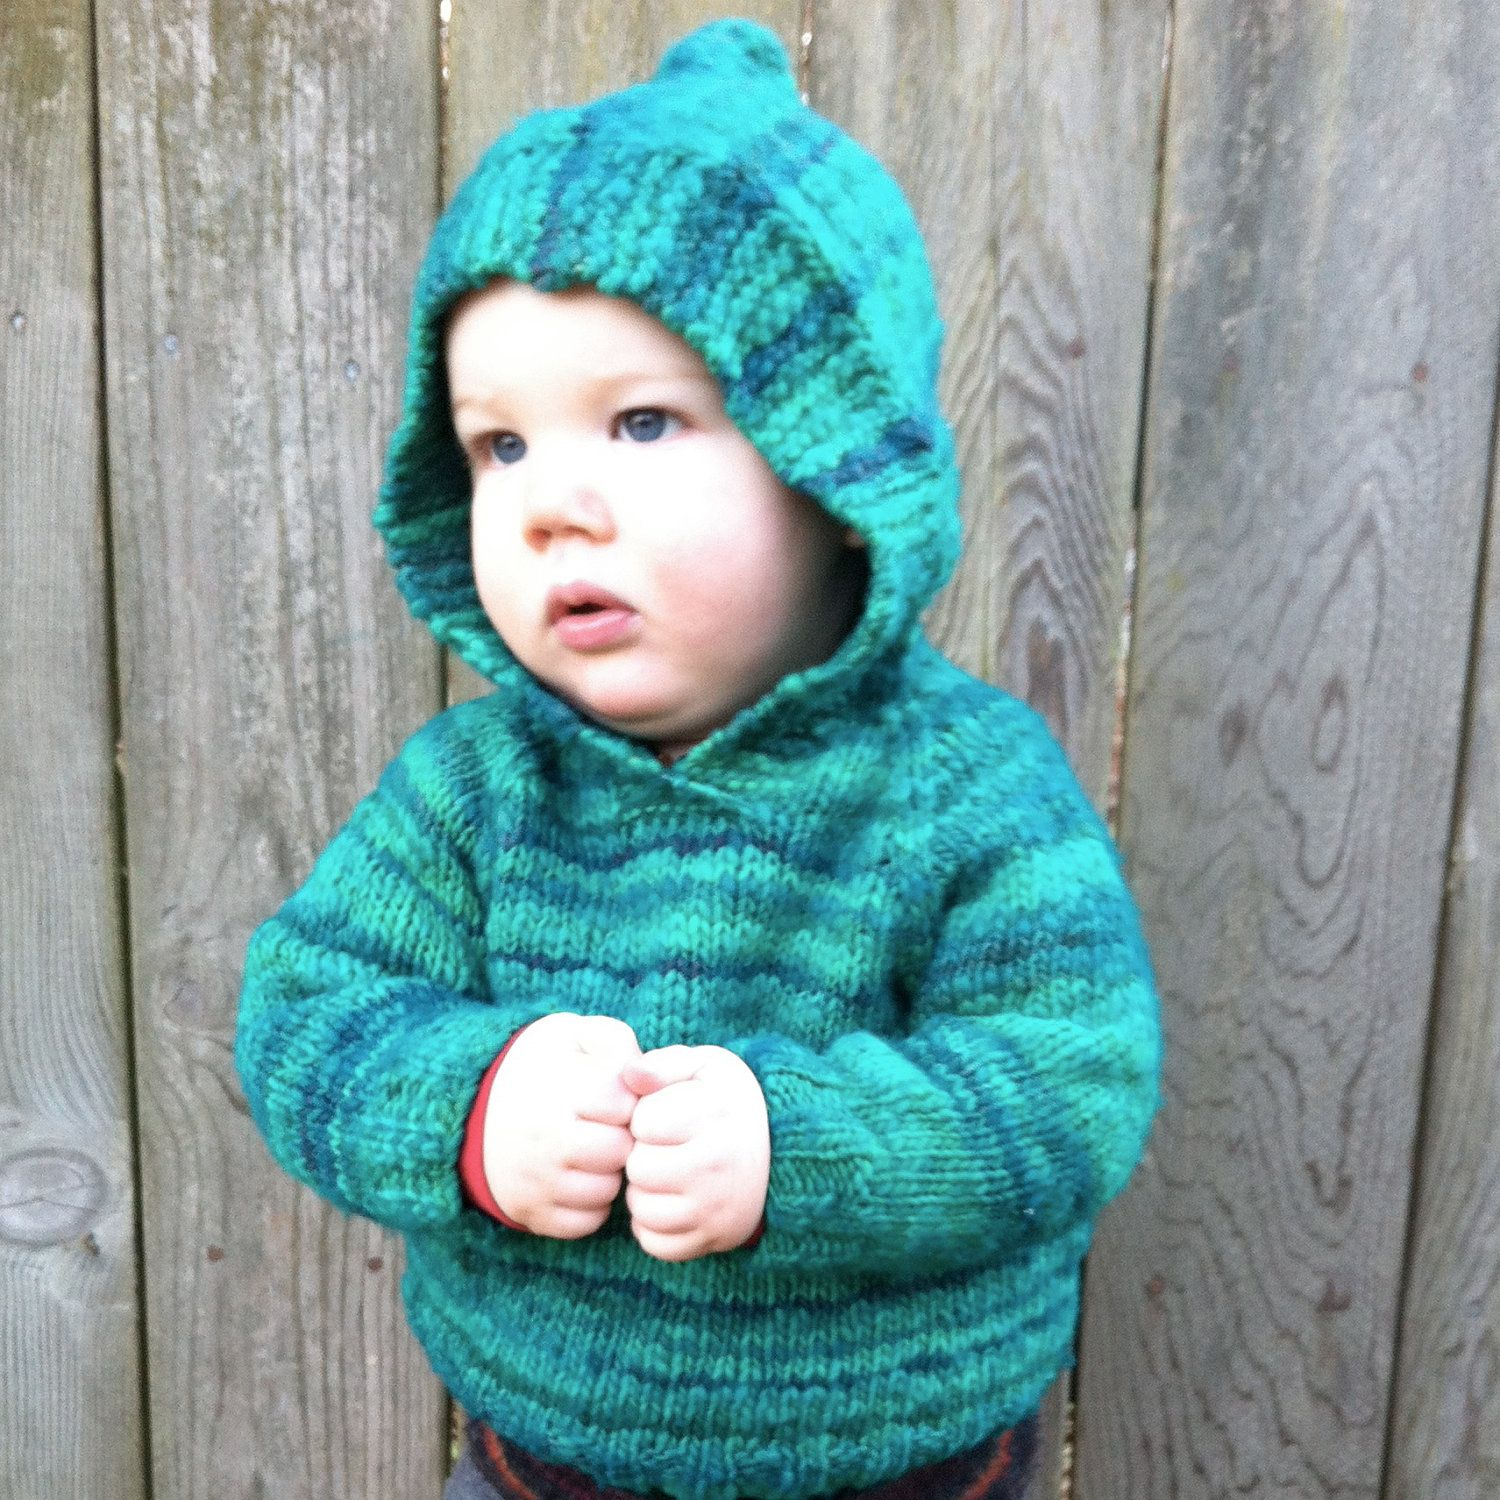 Knitting pdf pattern baby sweater infant toddler hooded sweater knitting pdf pattern baby sweater infant toddler hooded sweater baby nico sweater 500 bankloansurffo Choice Image